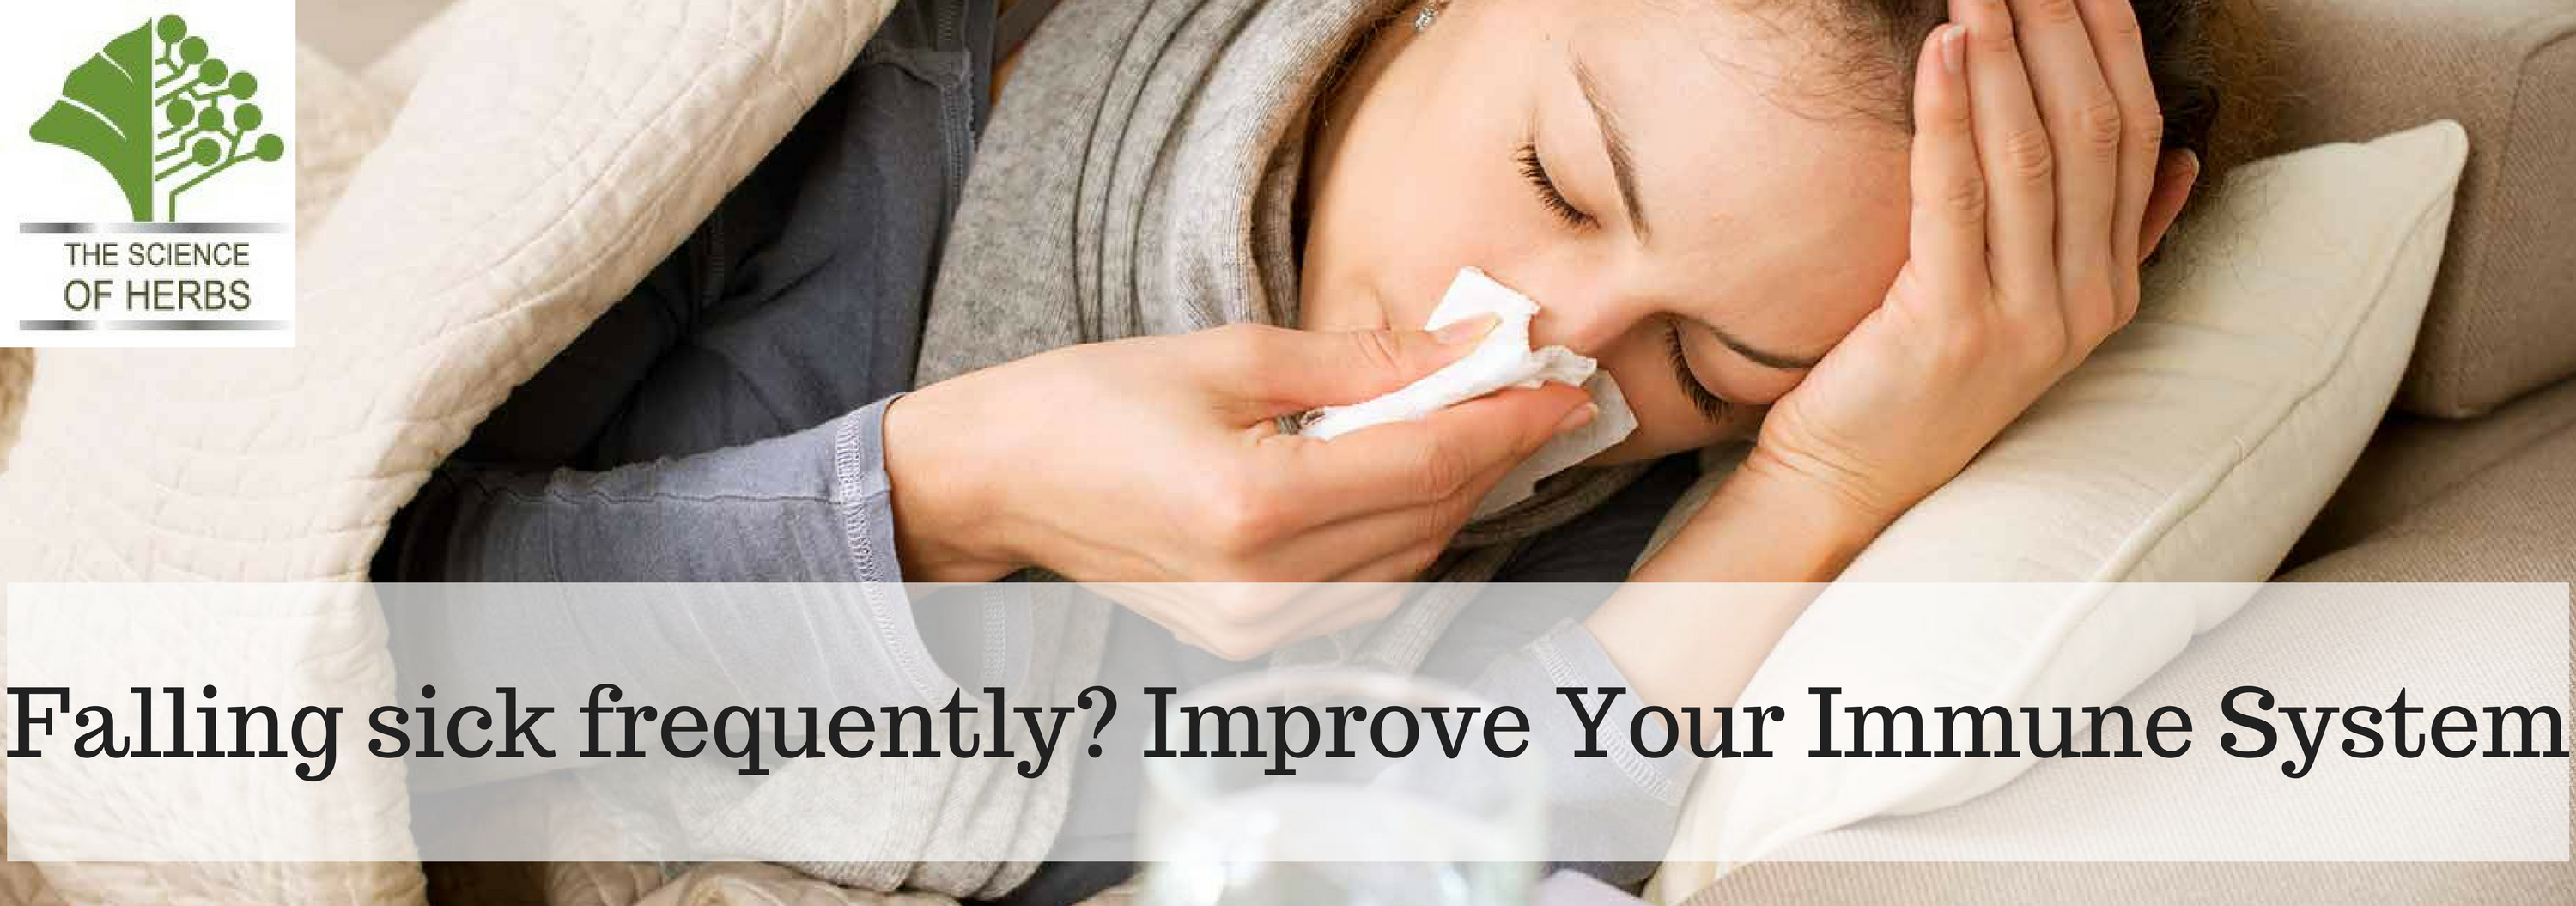 How to Protect Your Immune System